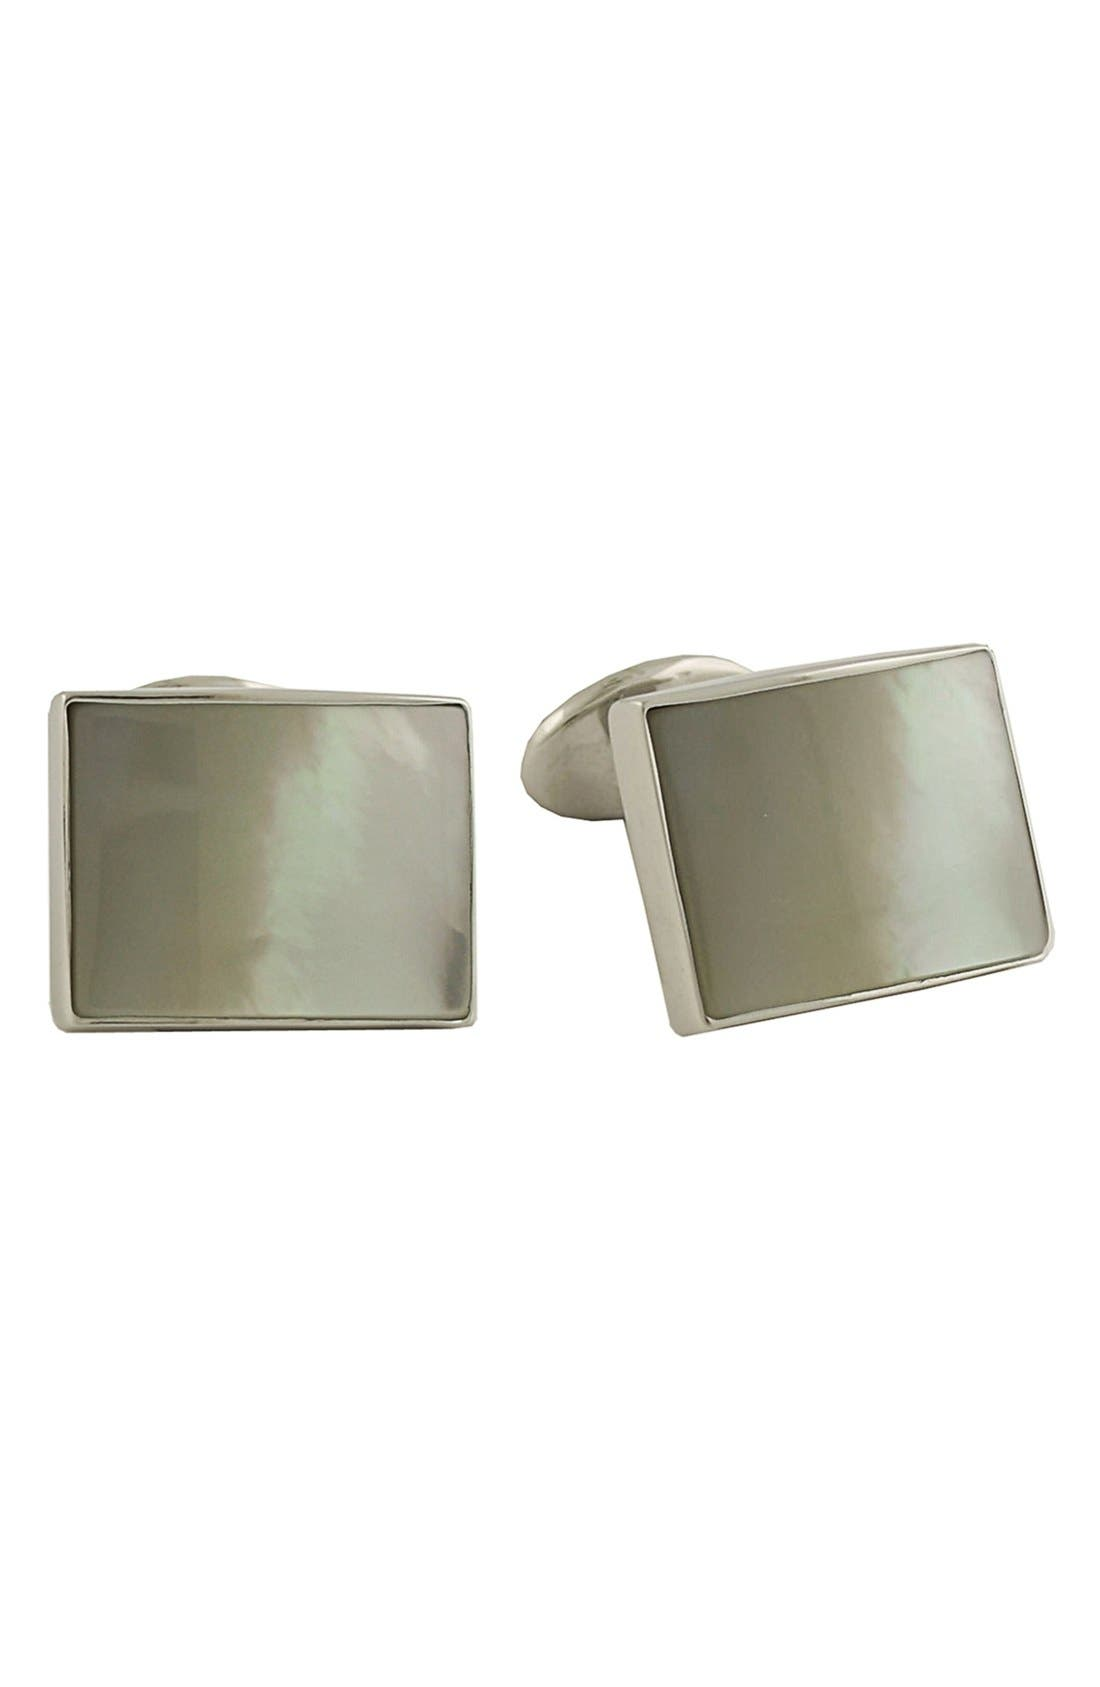 Sterling Silver Cuff Links,                         Main,                         color, MOTHER OF PEARL